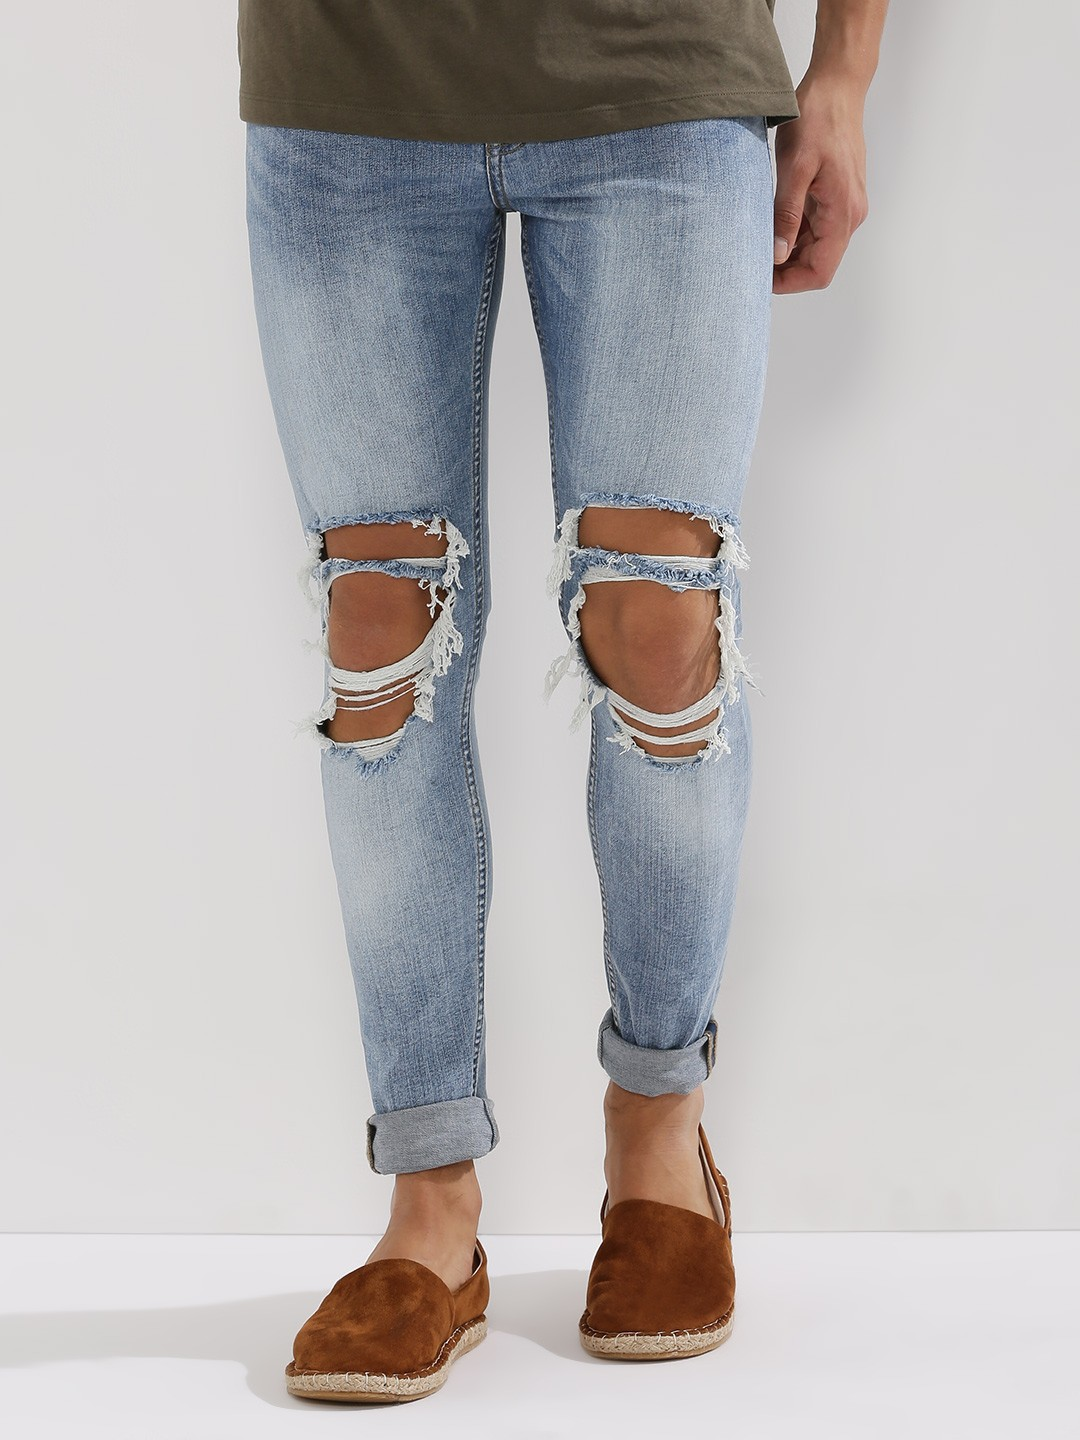 Jeans for Men - Online Mens Jeans Shopping in India at Koovs